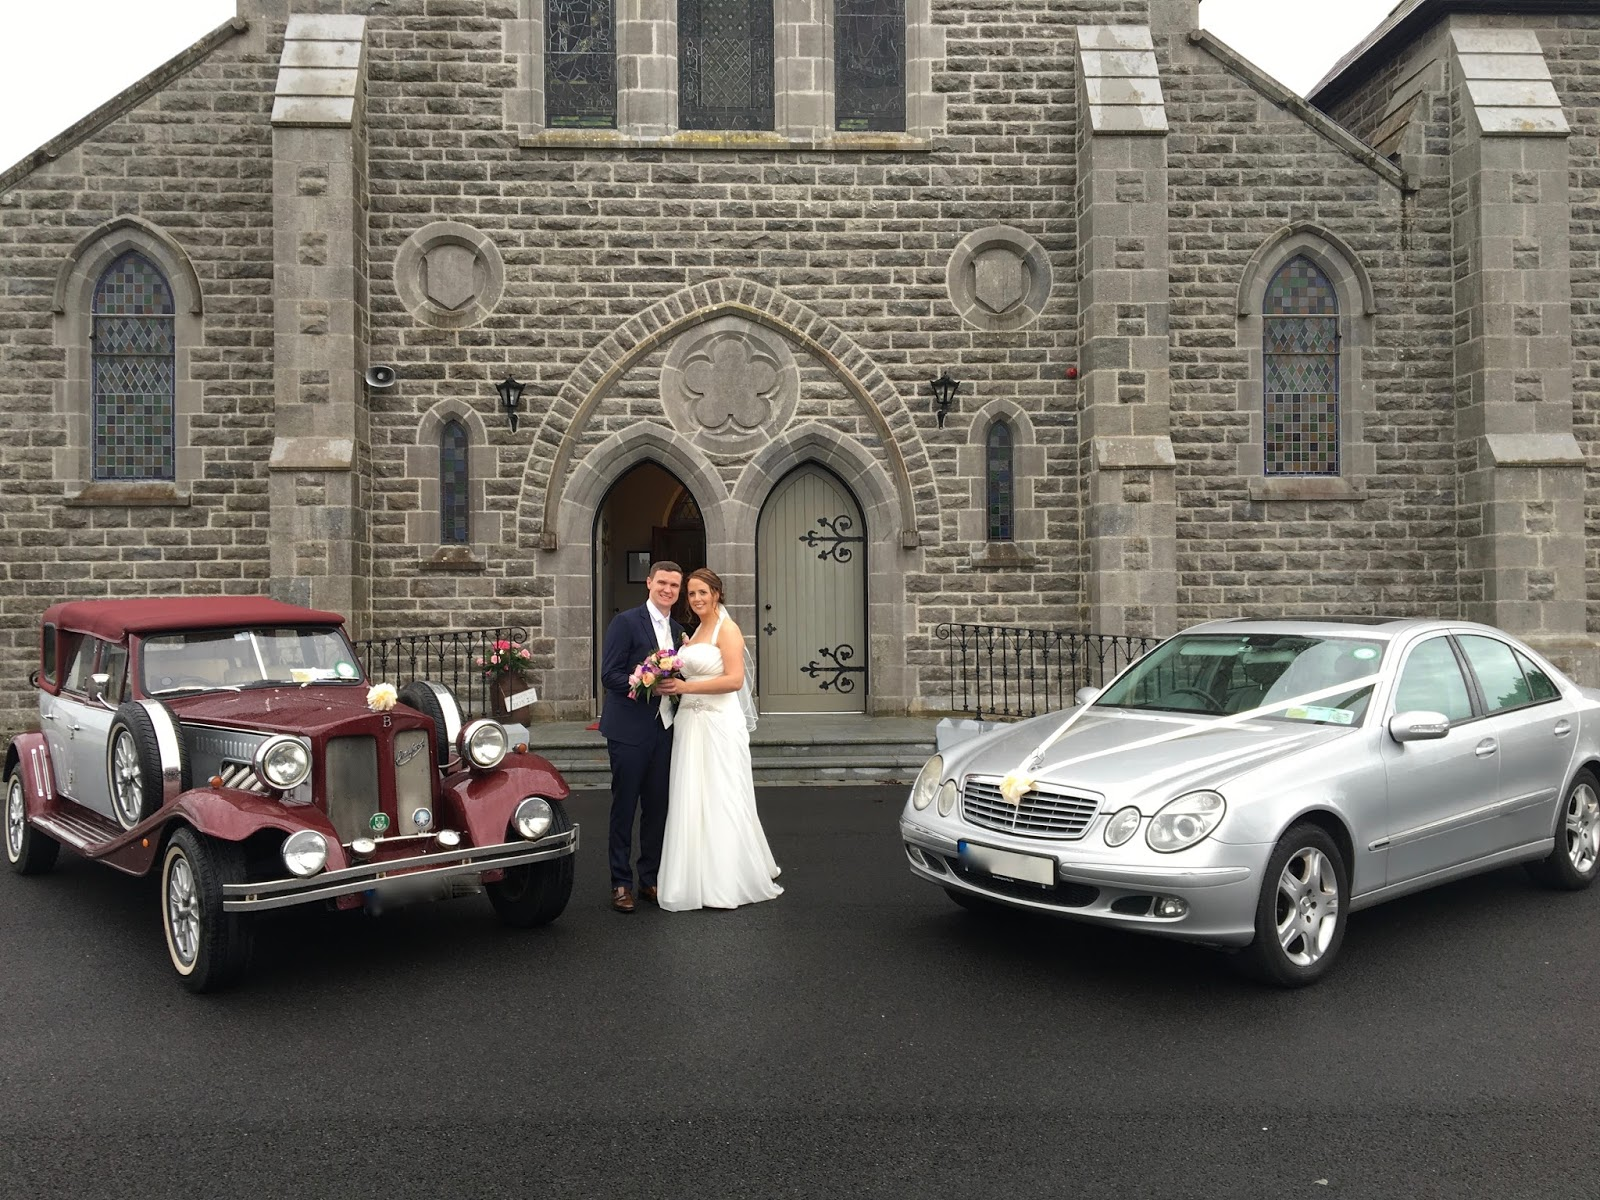 Wedding Cars Drogheda Louth Limousine Hire Dundalk